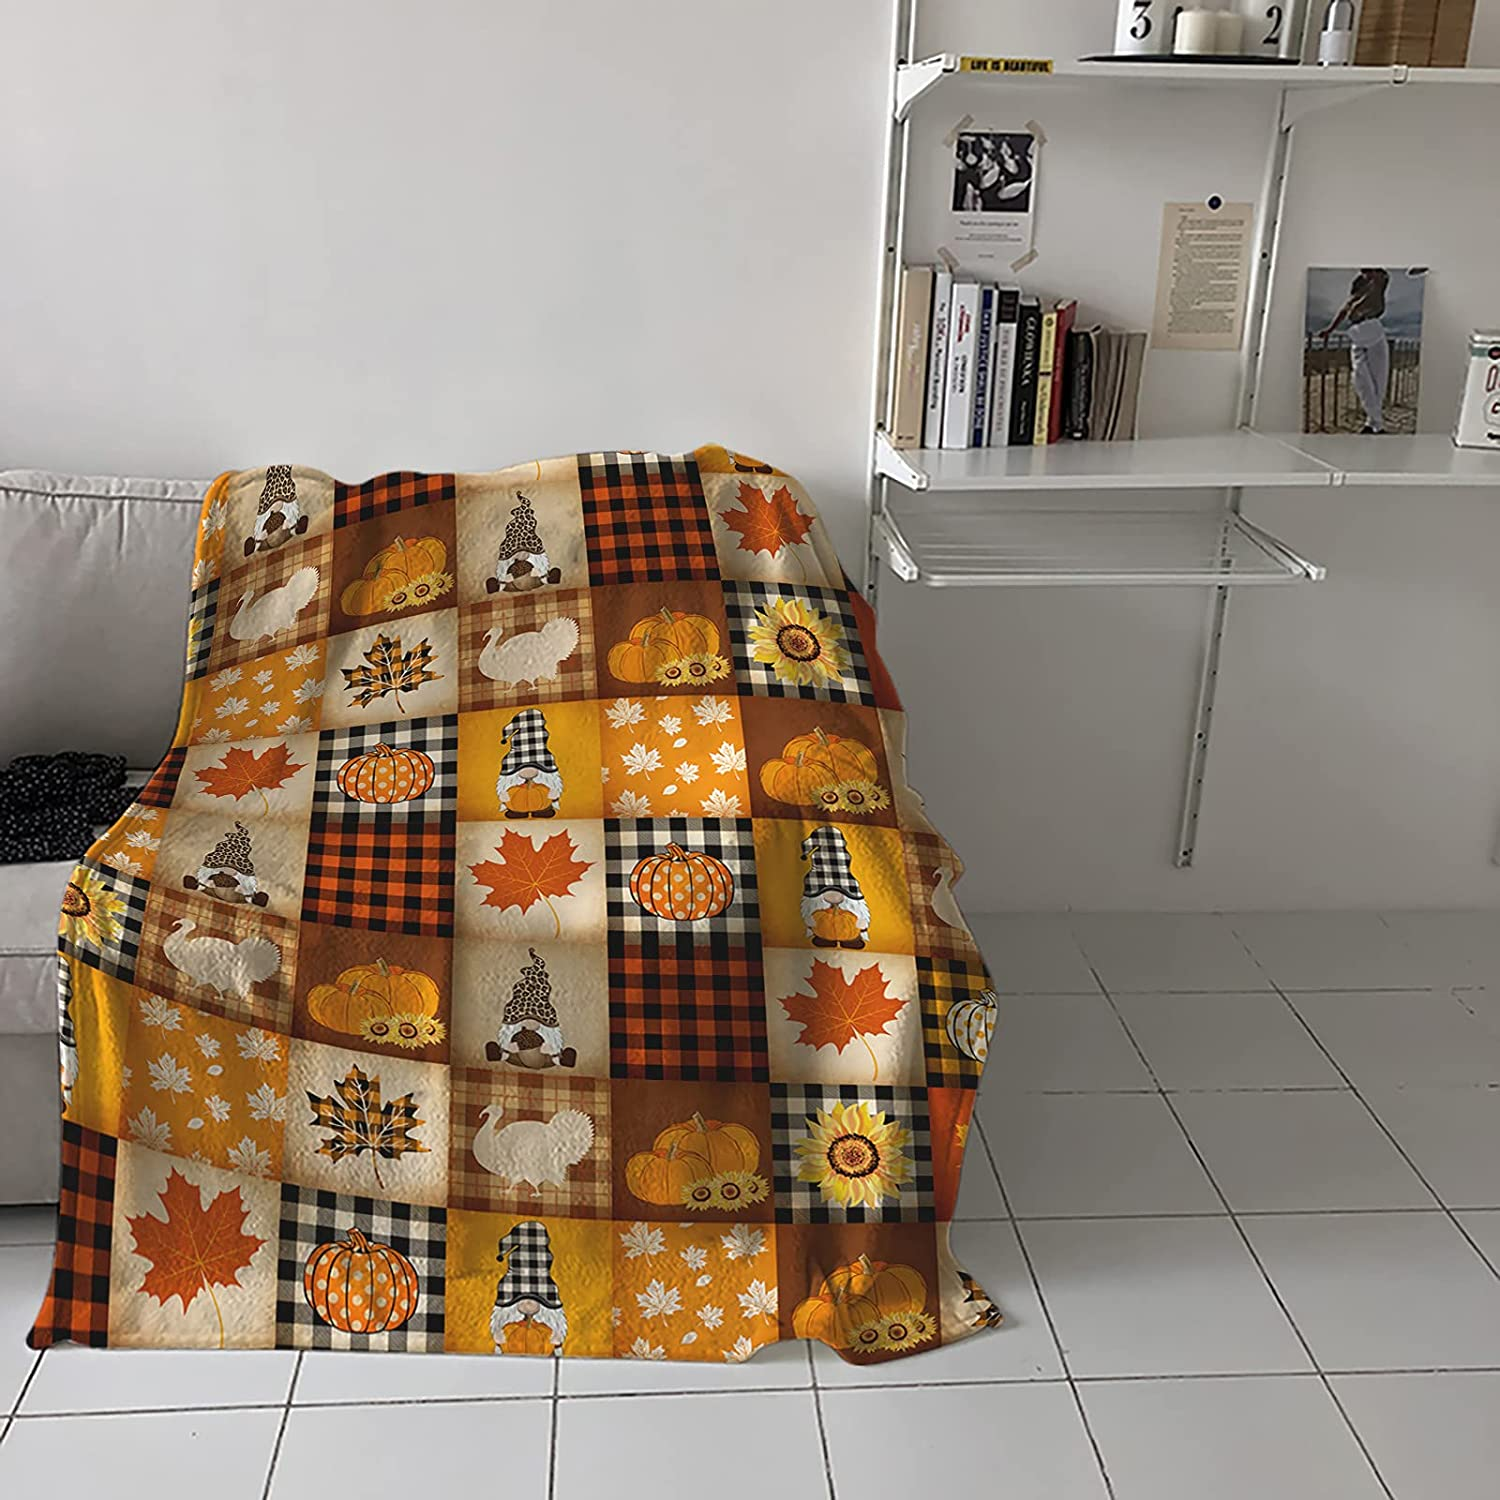 Soft Fluffy Portland Mall Flannel Credence Fleece Throw Blanket for Tha Couch Sofa Bed